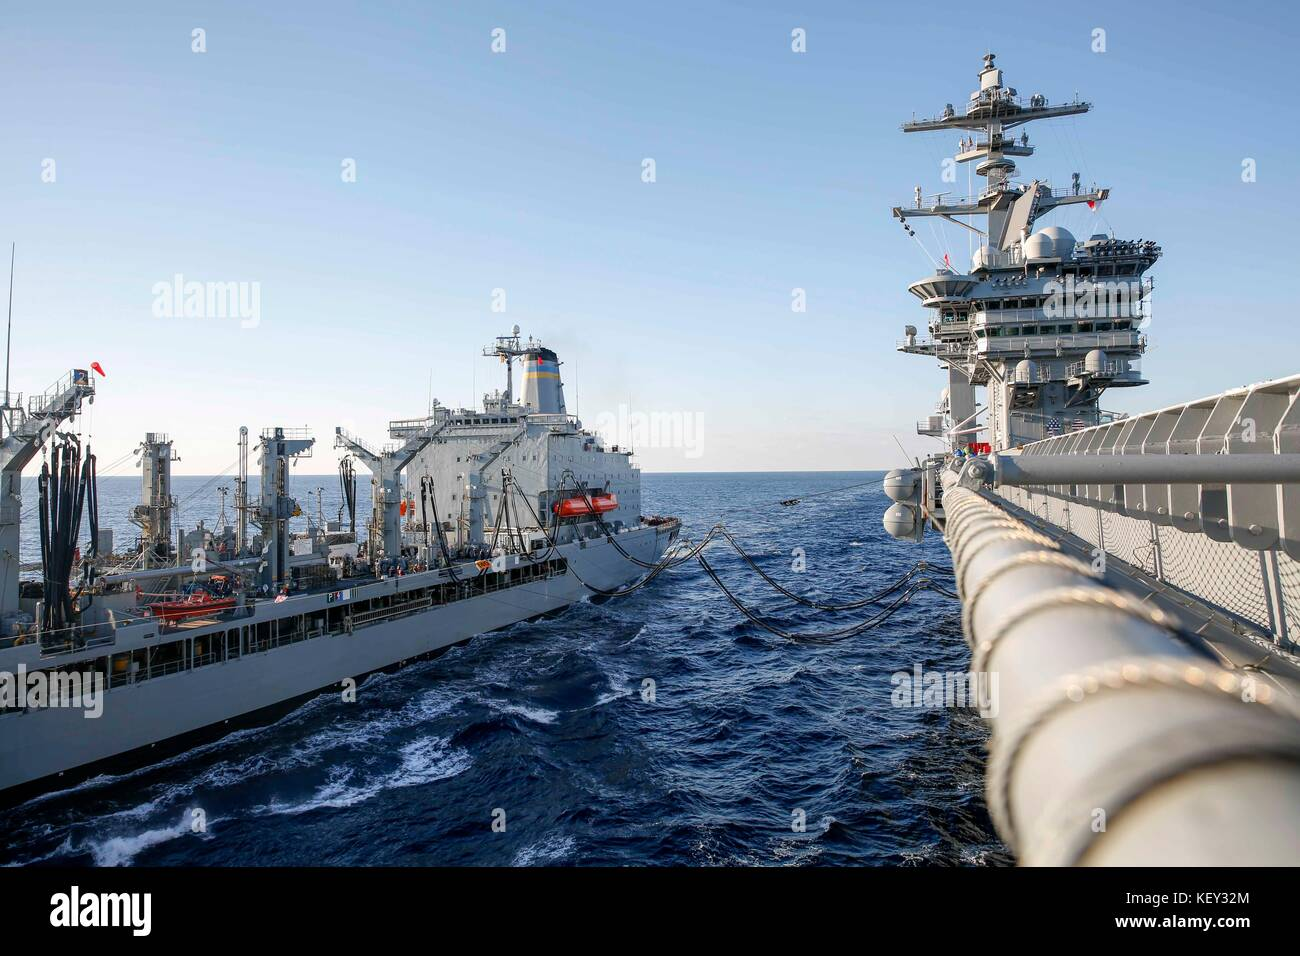 The Nimitz-class aircraft carrier USS Abraham Lincoln (CVN 72) performs an underway replenishment. - Stock Image